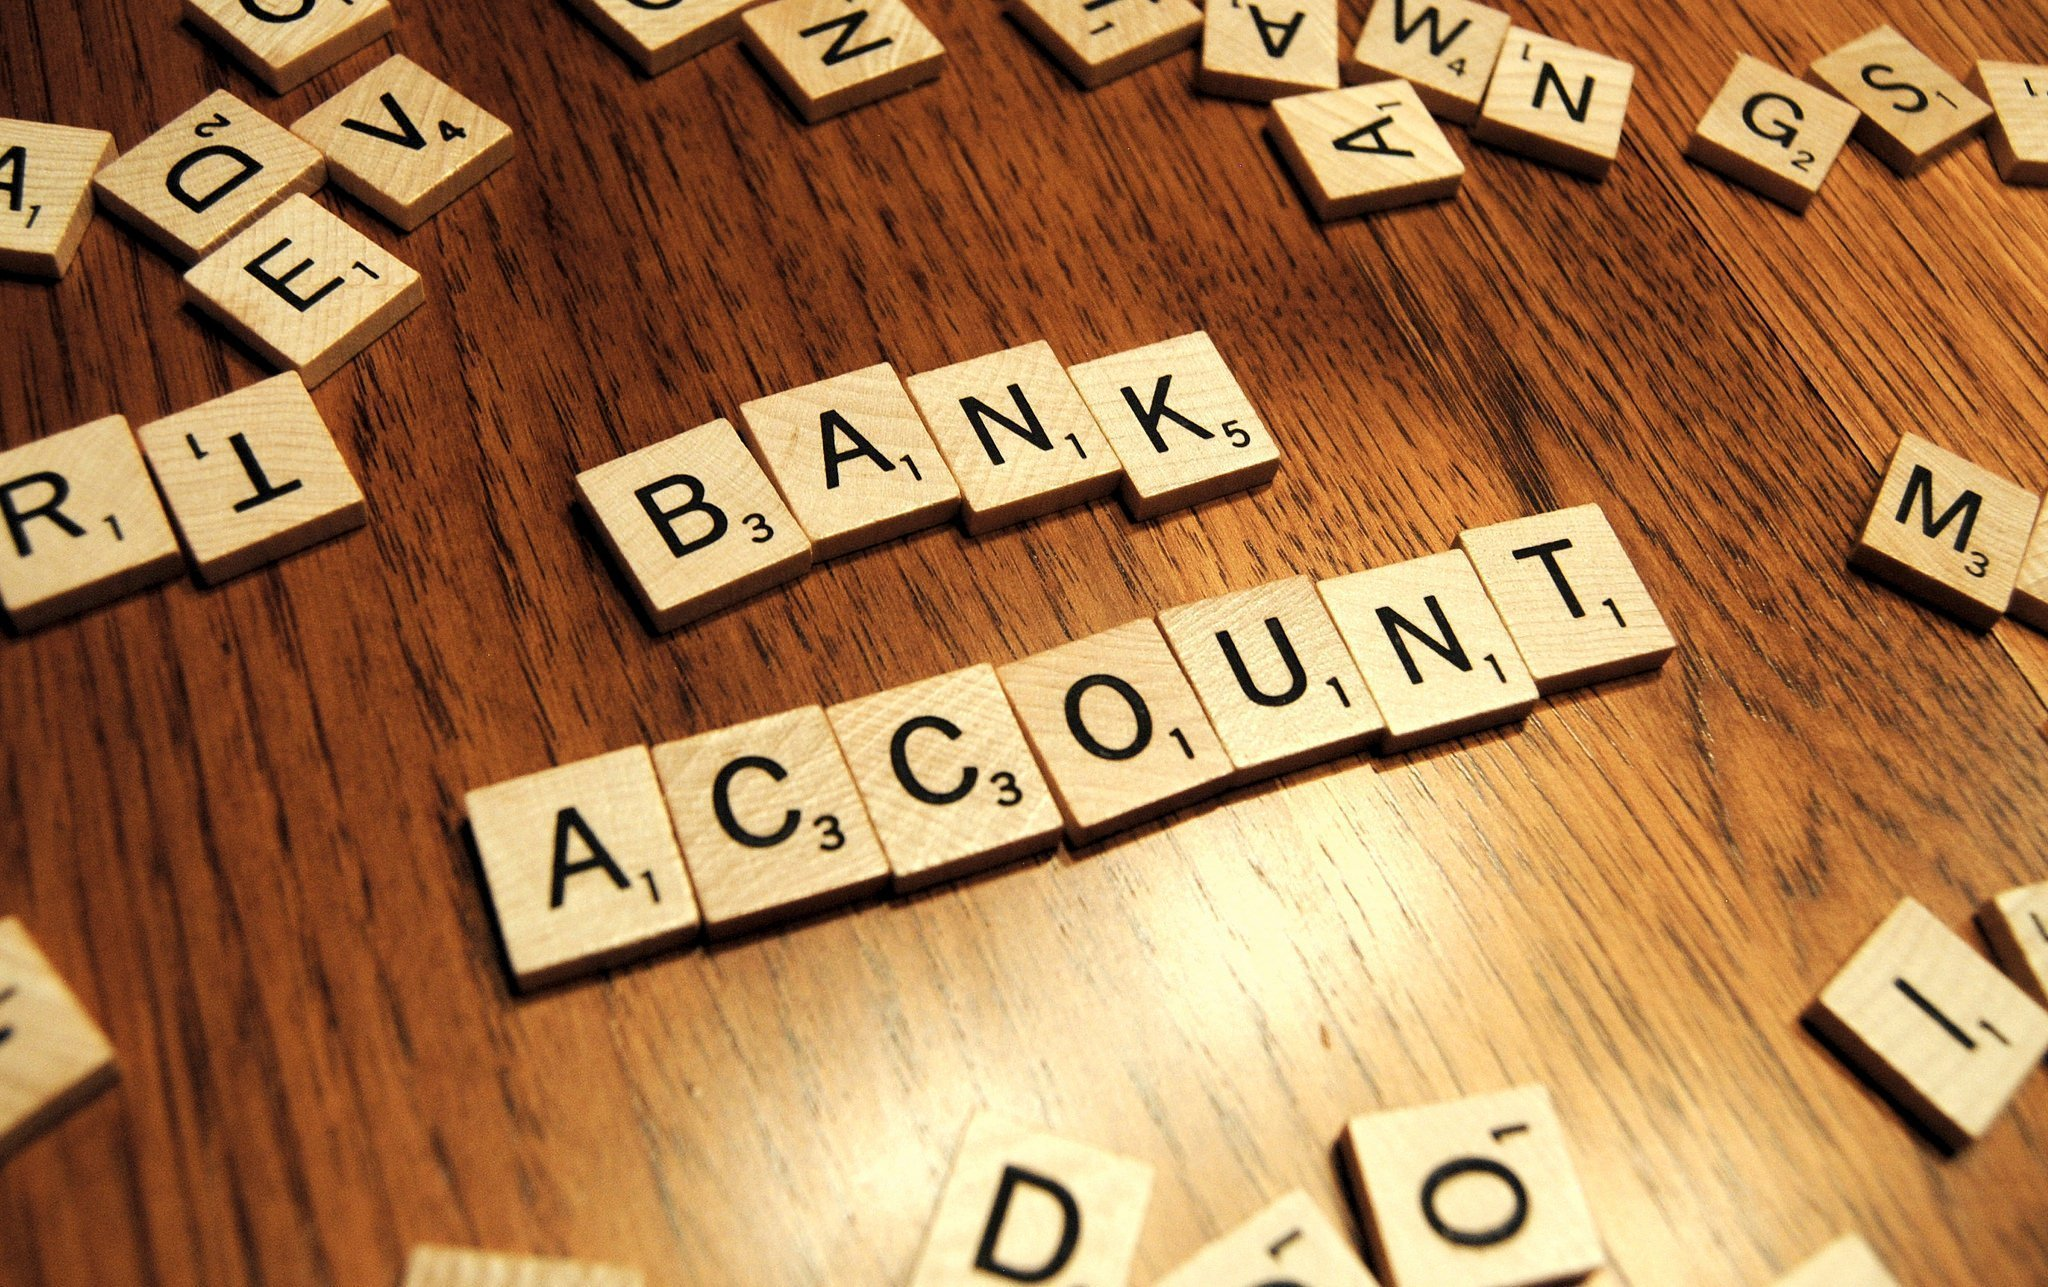 How to open a bank account in a Turkish bank and why do you need a foreigner?